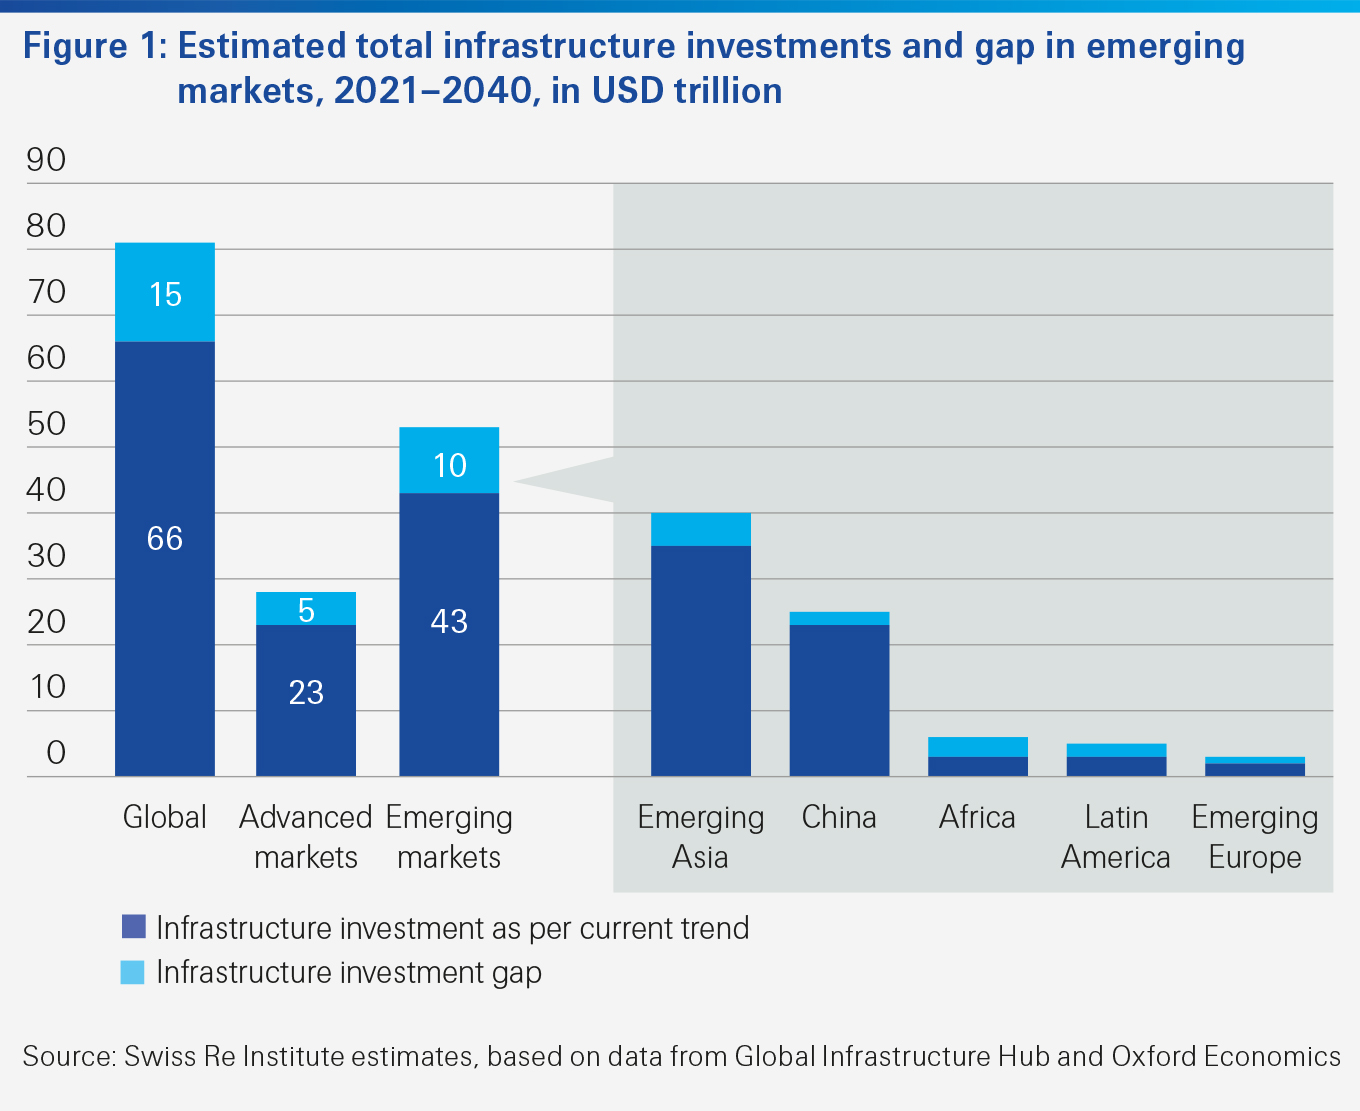 Estimated total infrastructure investments and gap in emerging markets between 2021 and 2040